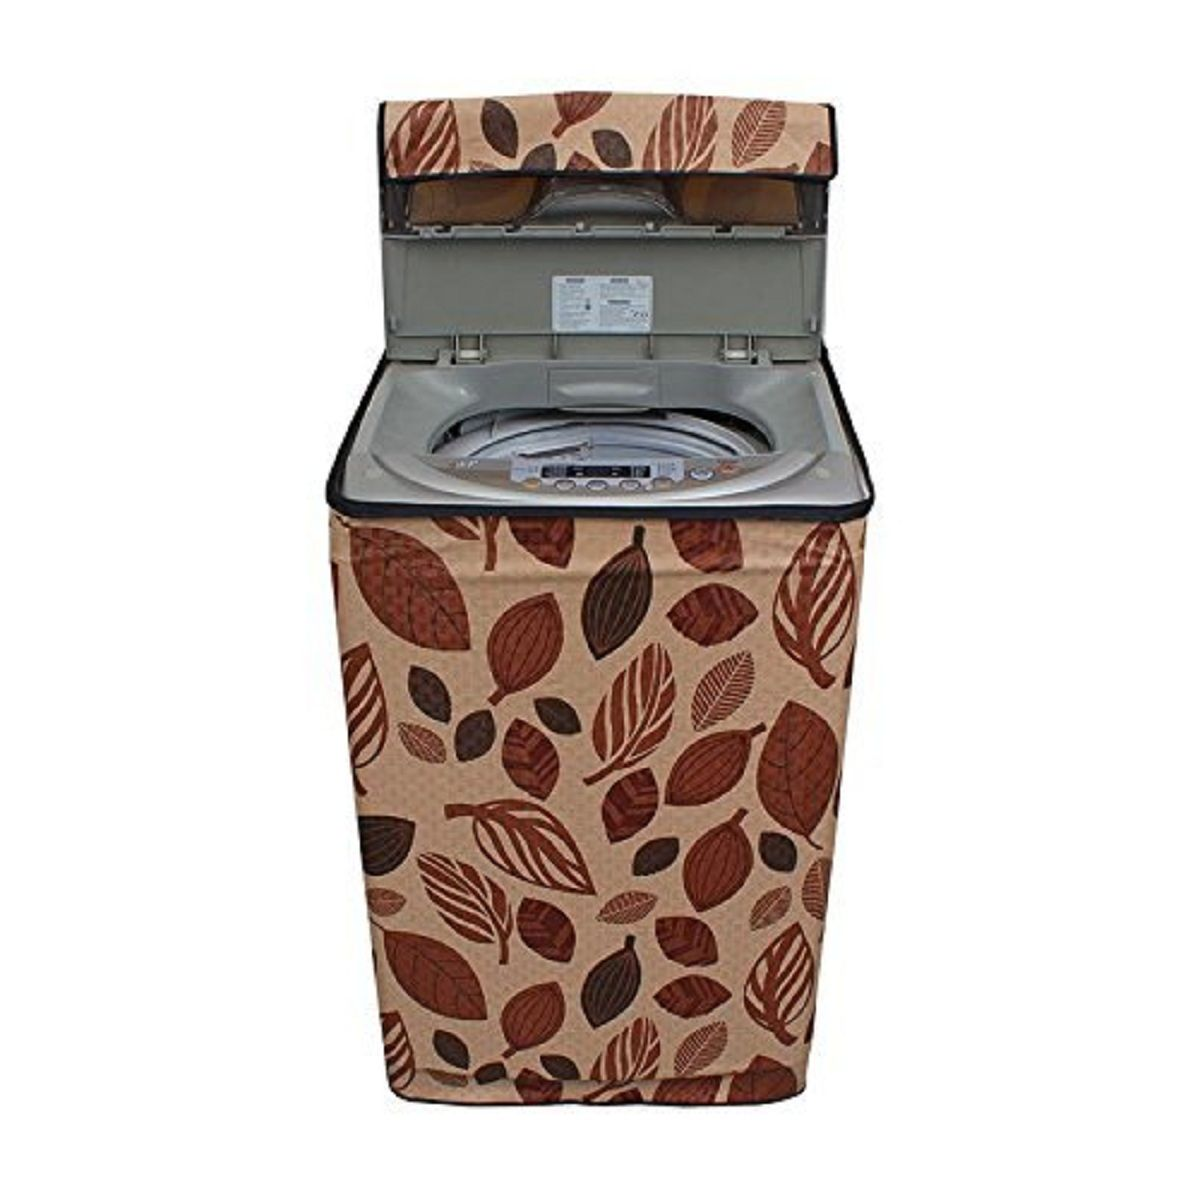 Kuber Industries™ Top Load Fully Automatic Washing Machine Cover In Leaf Design Brown Color (Suitable For 6 kg, 6.5 kg, 7 kg, 7.5 kg )